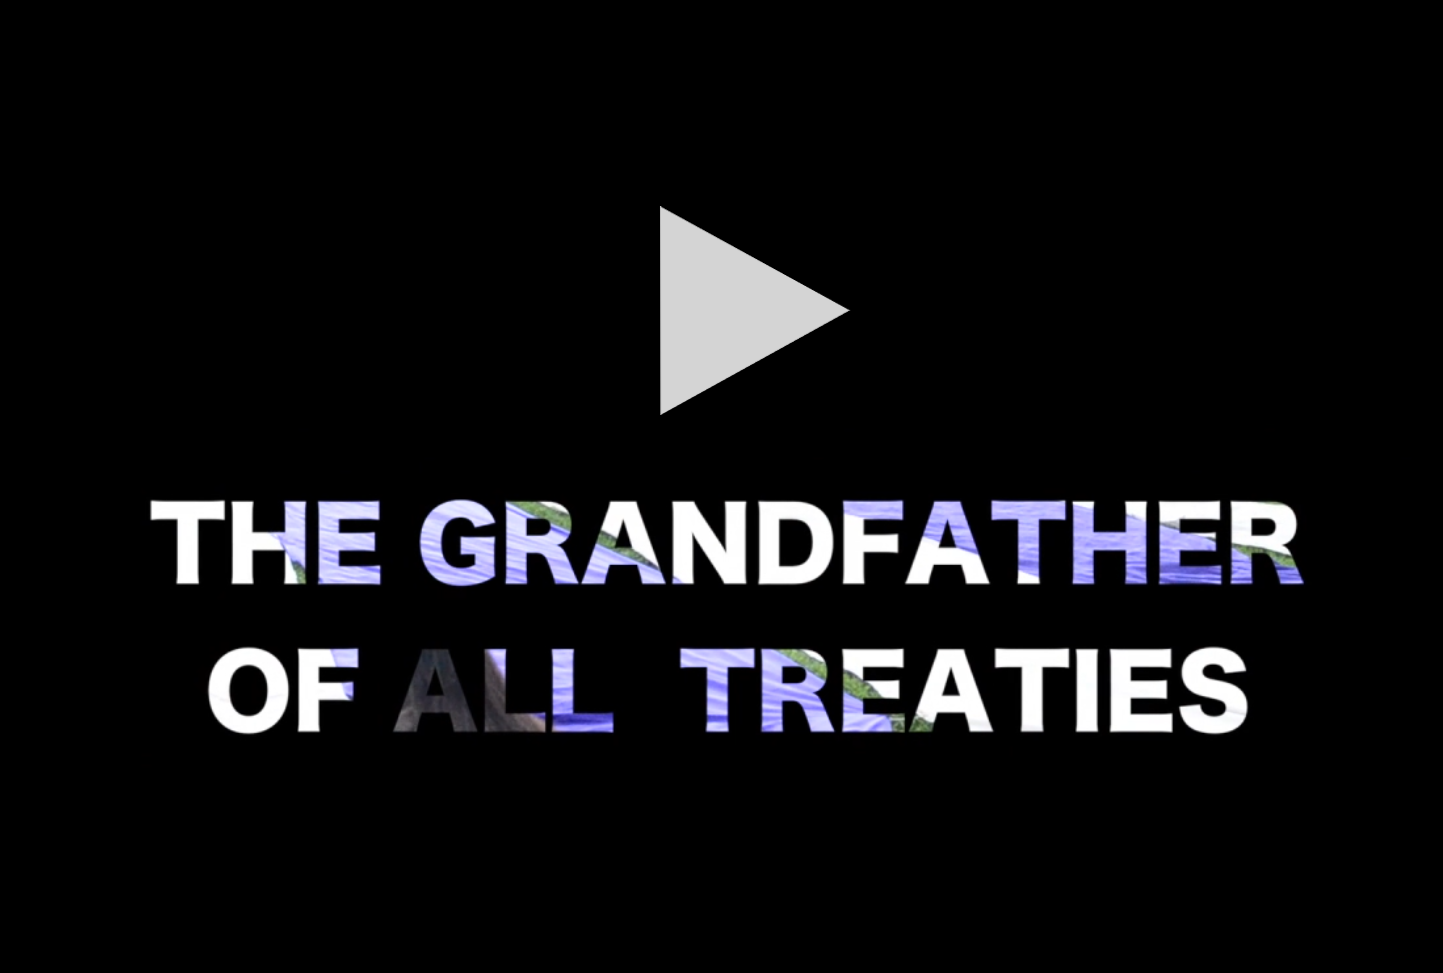 The Grandfather of all Treaties video